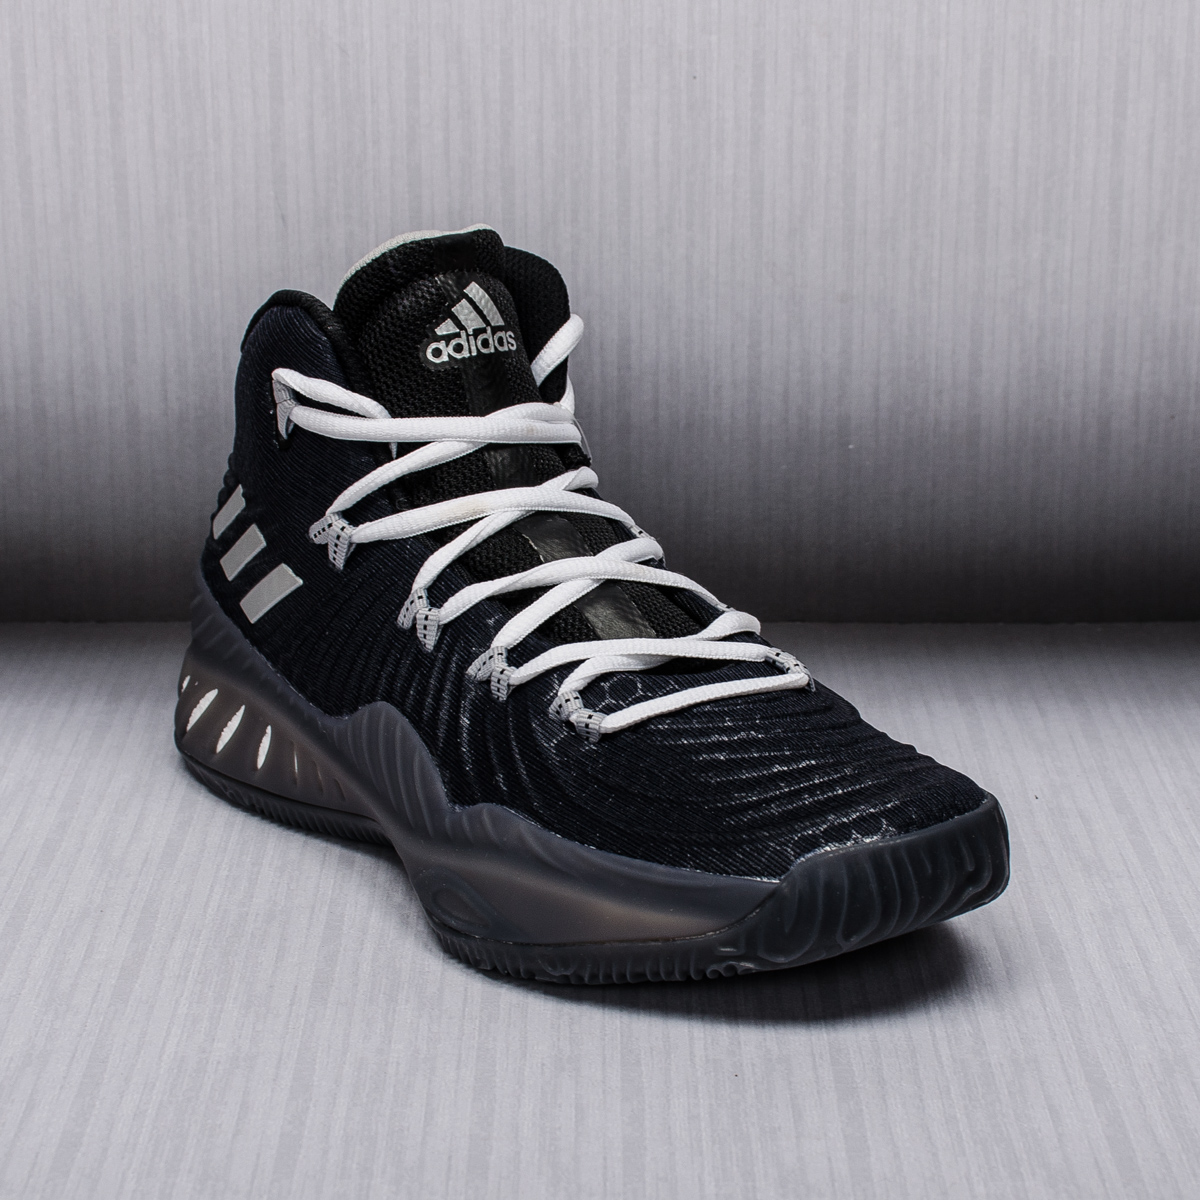 adidas Crazy Explosive 2017 Basketball Shoes - BASKETBALL ...